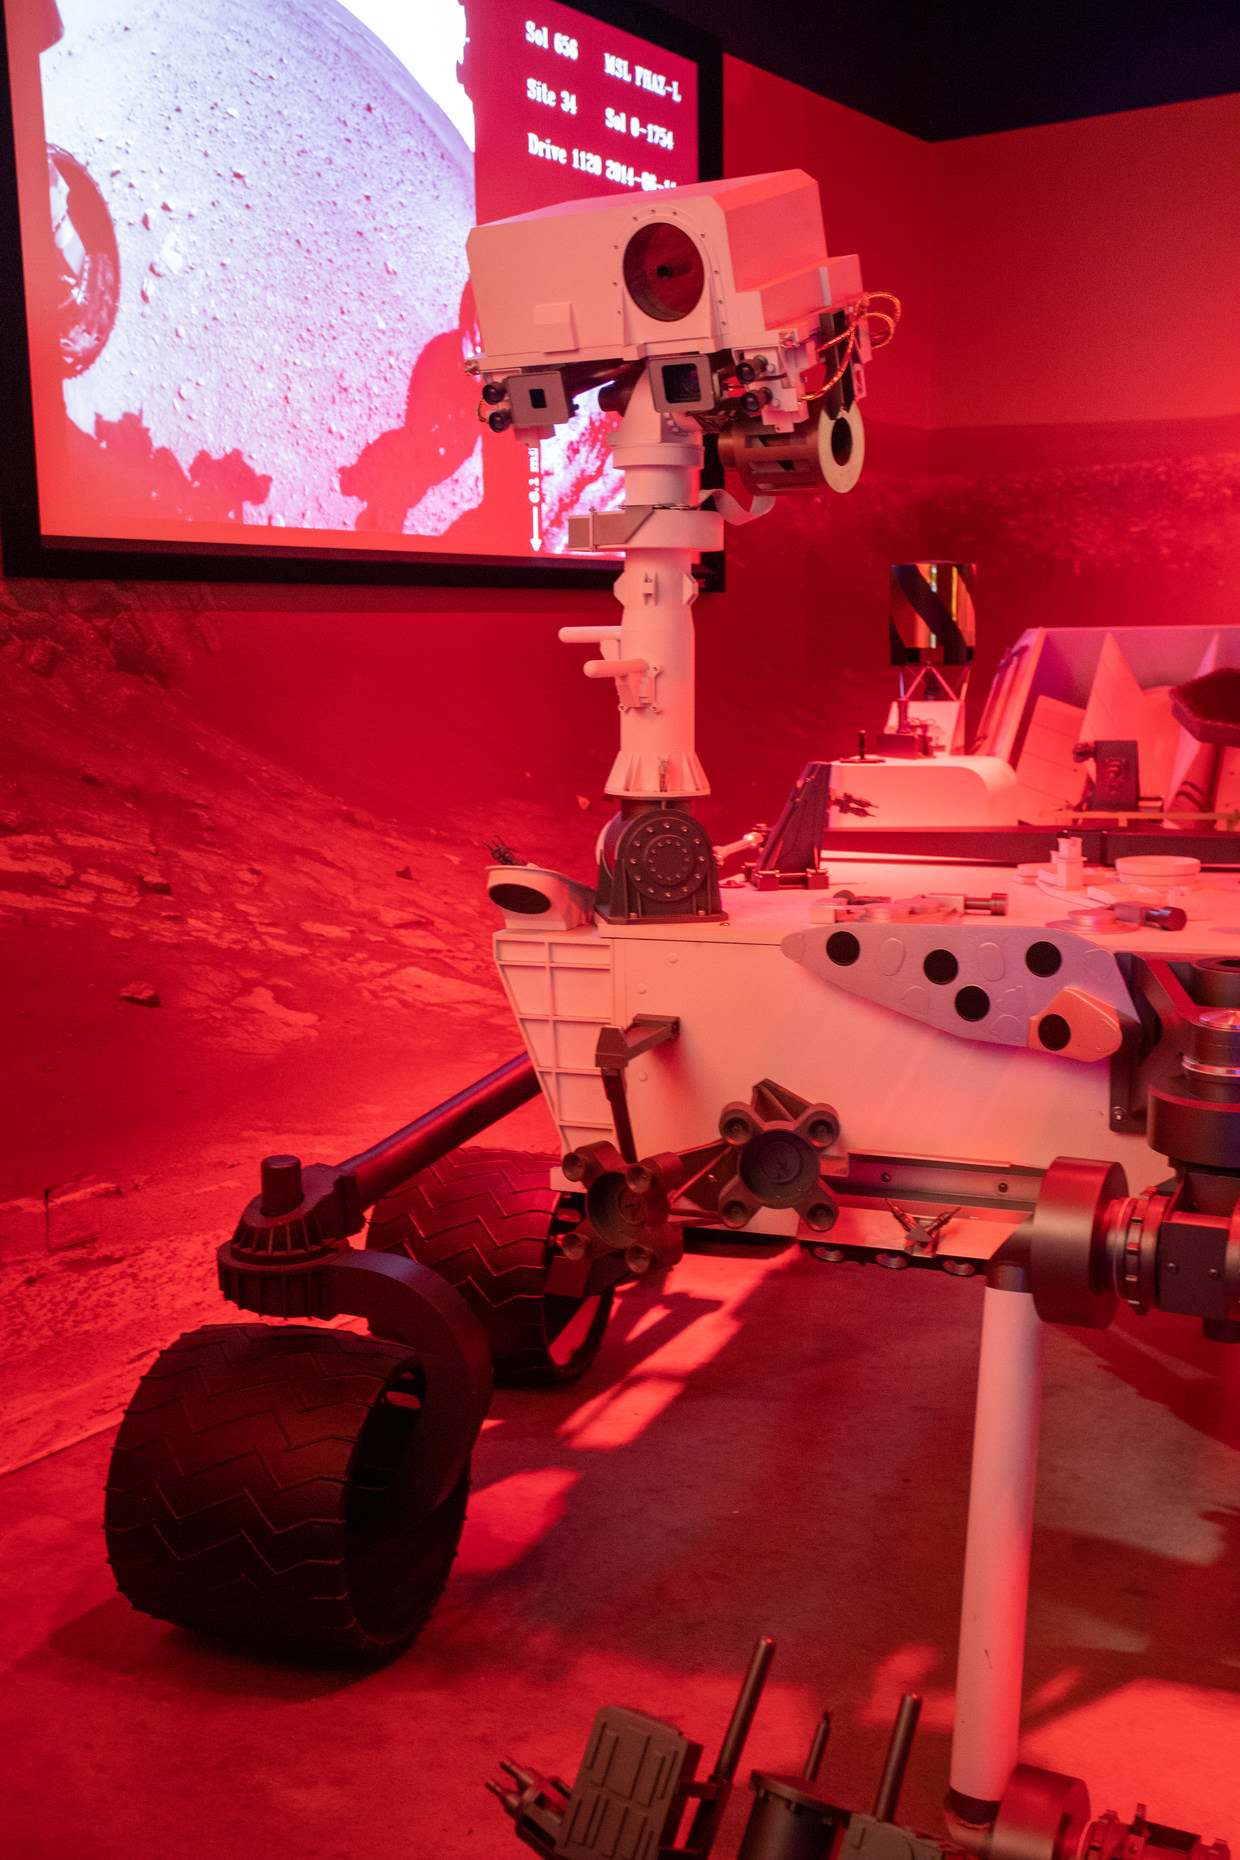 A lifesize replica of the Curiosity rover